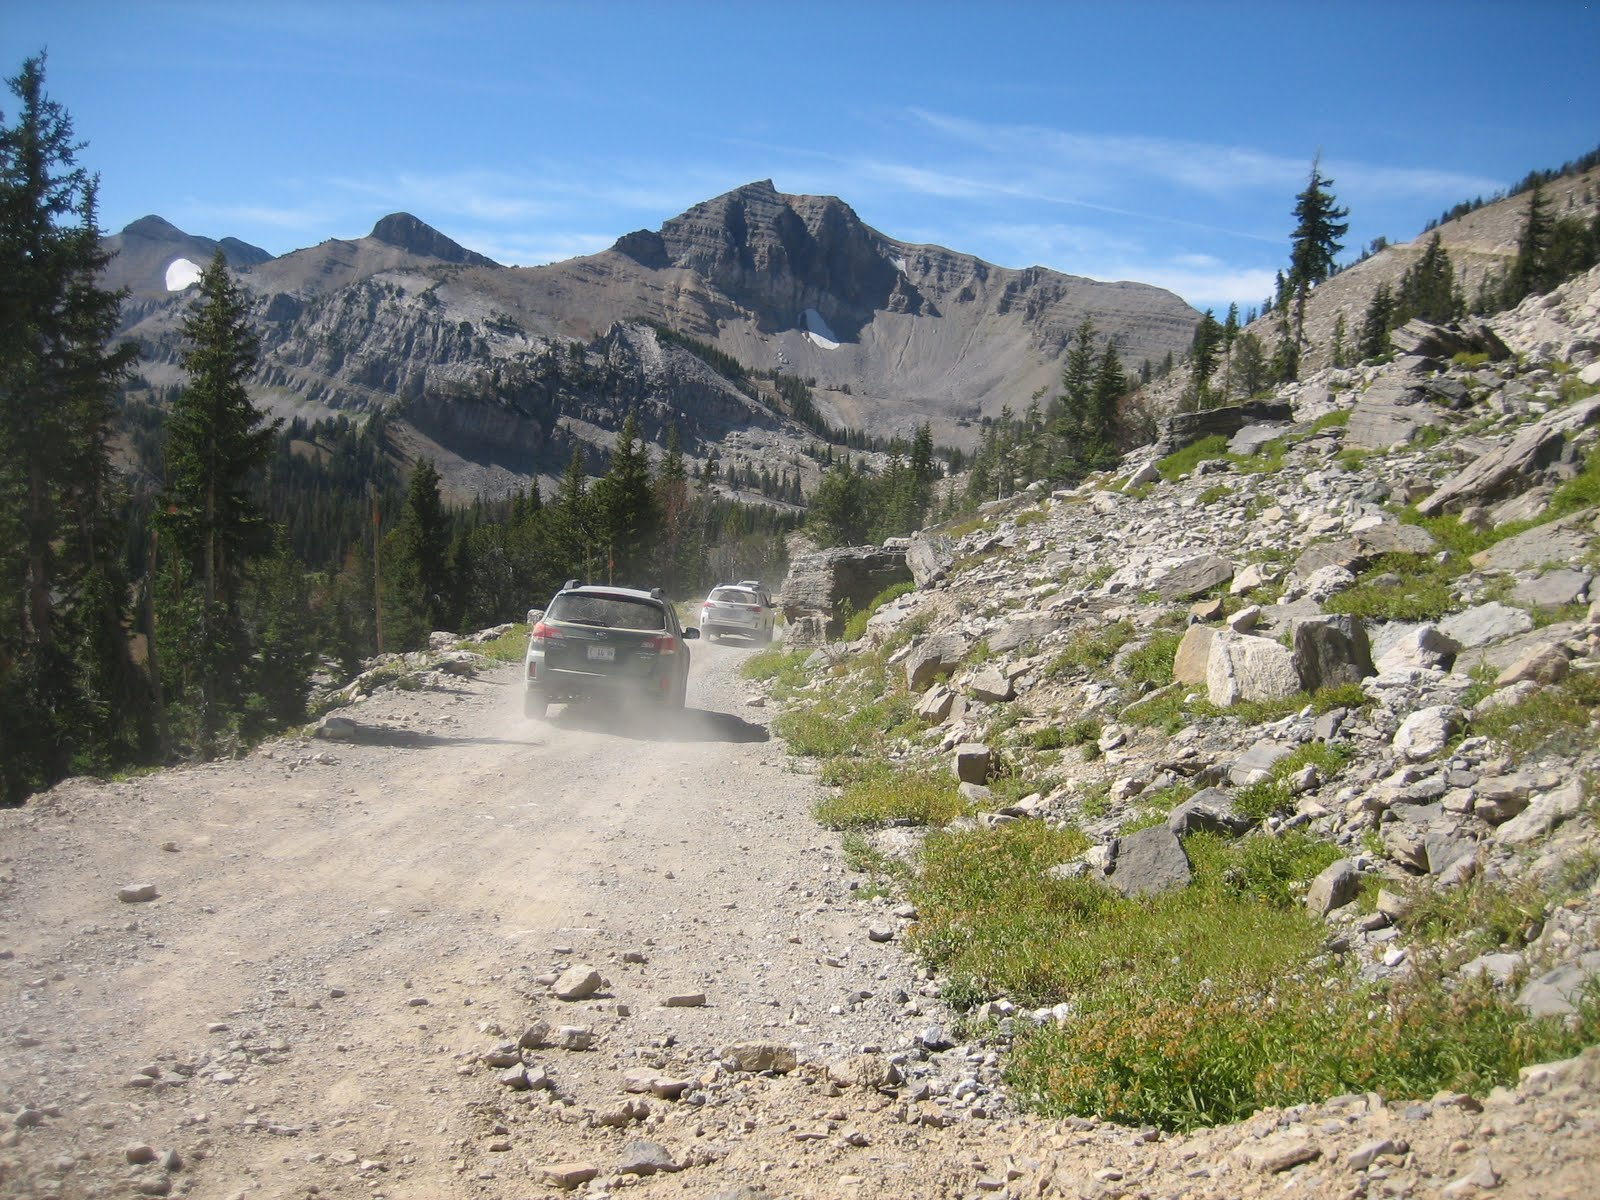 subaru outback lifestyle camping event leave no trace